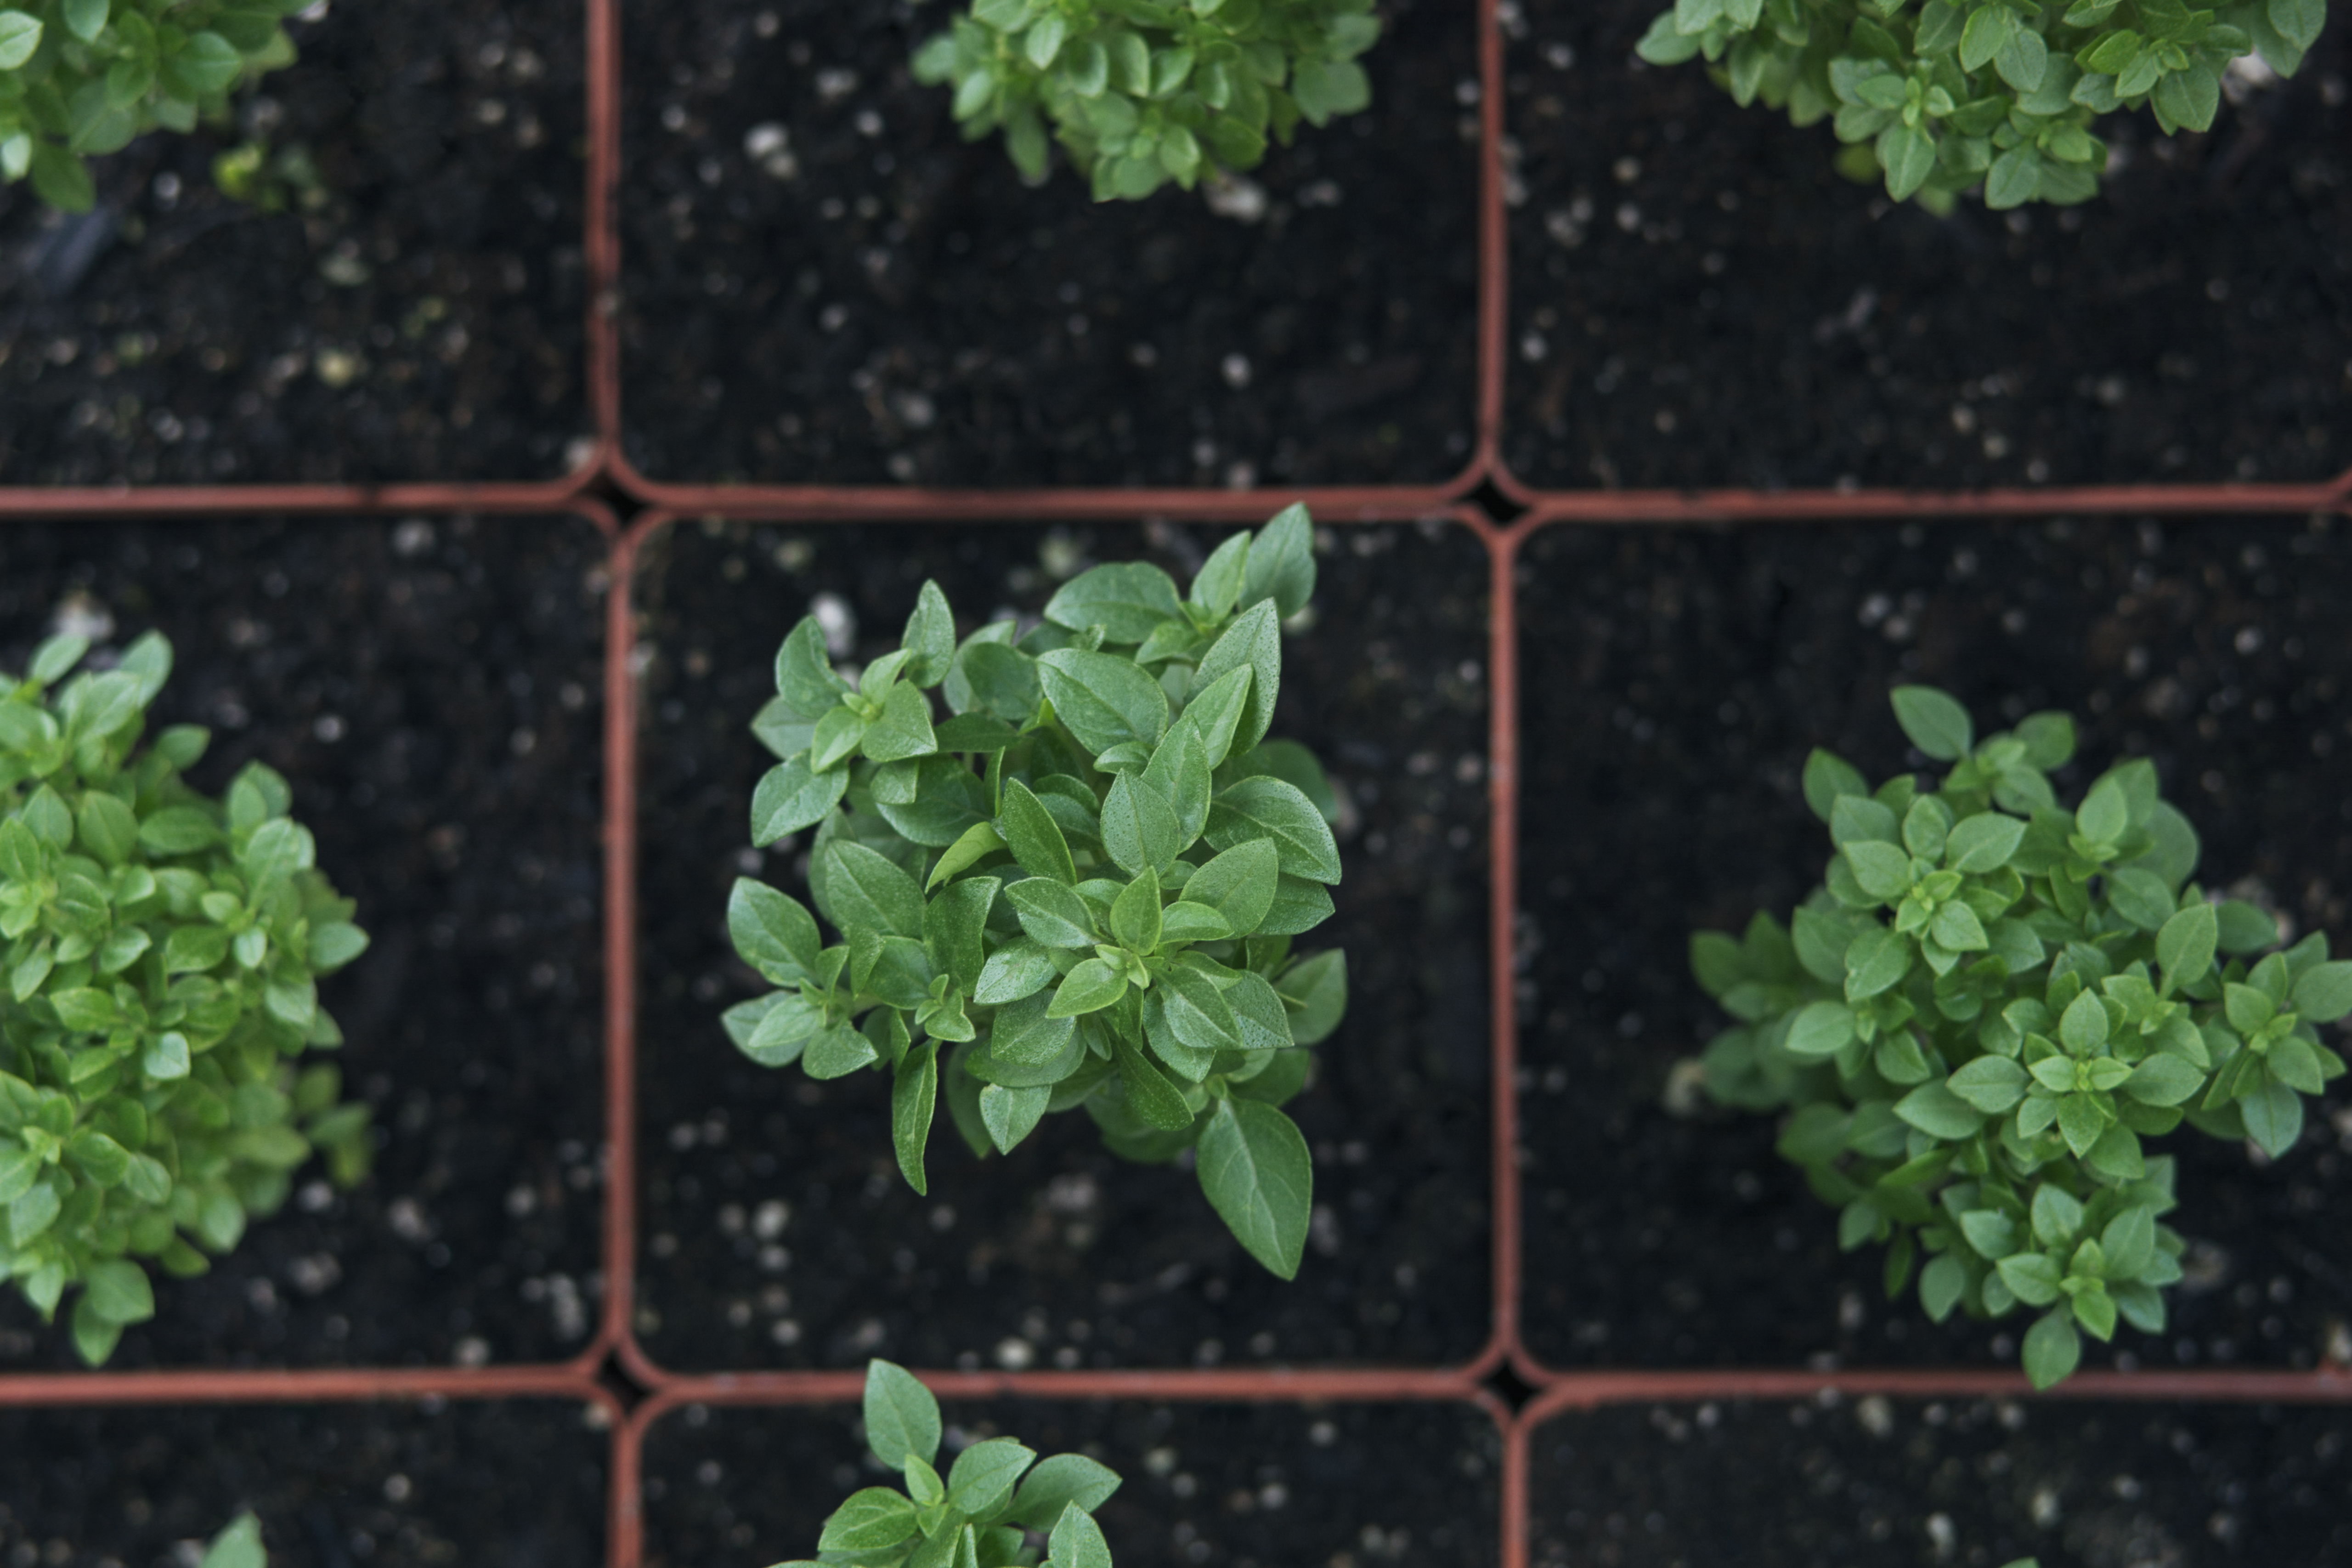 How to Cure Overwatered Basil | Home Guides | SF Gate